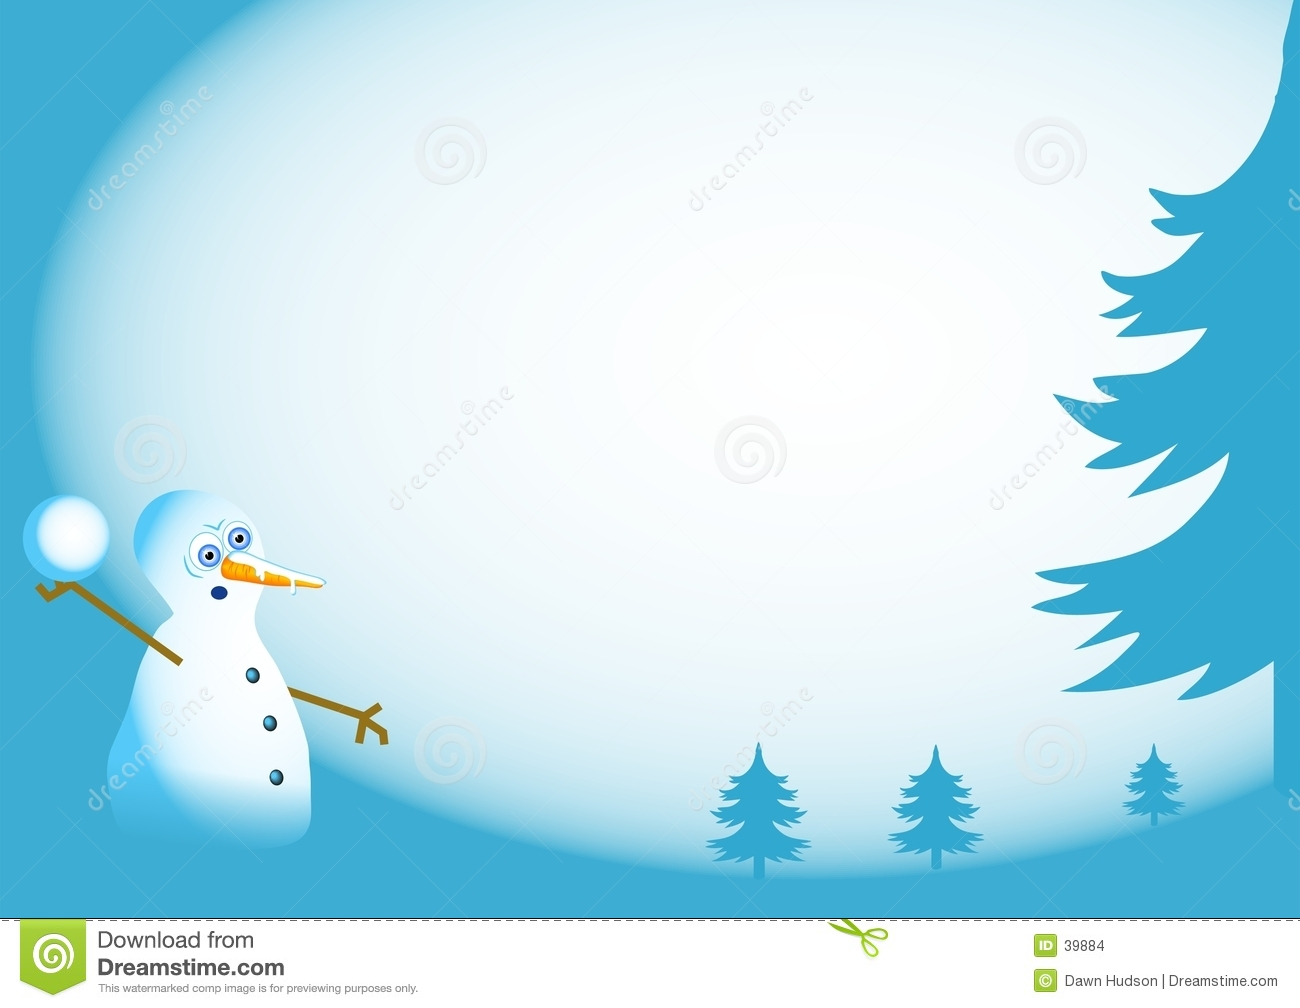 Snowman Background Stock Images - Image: 39884